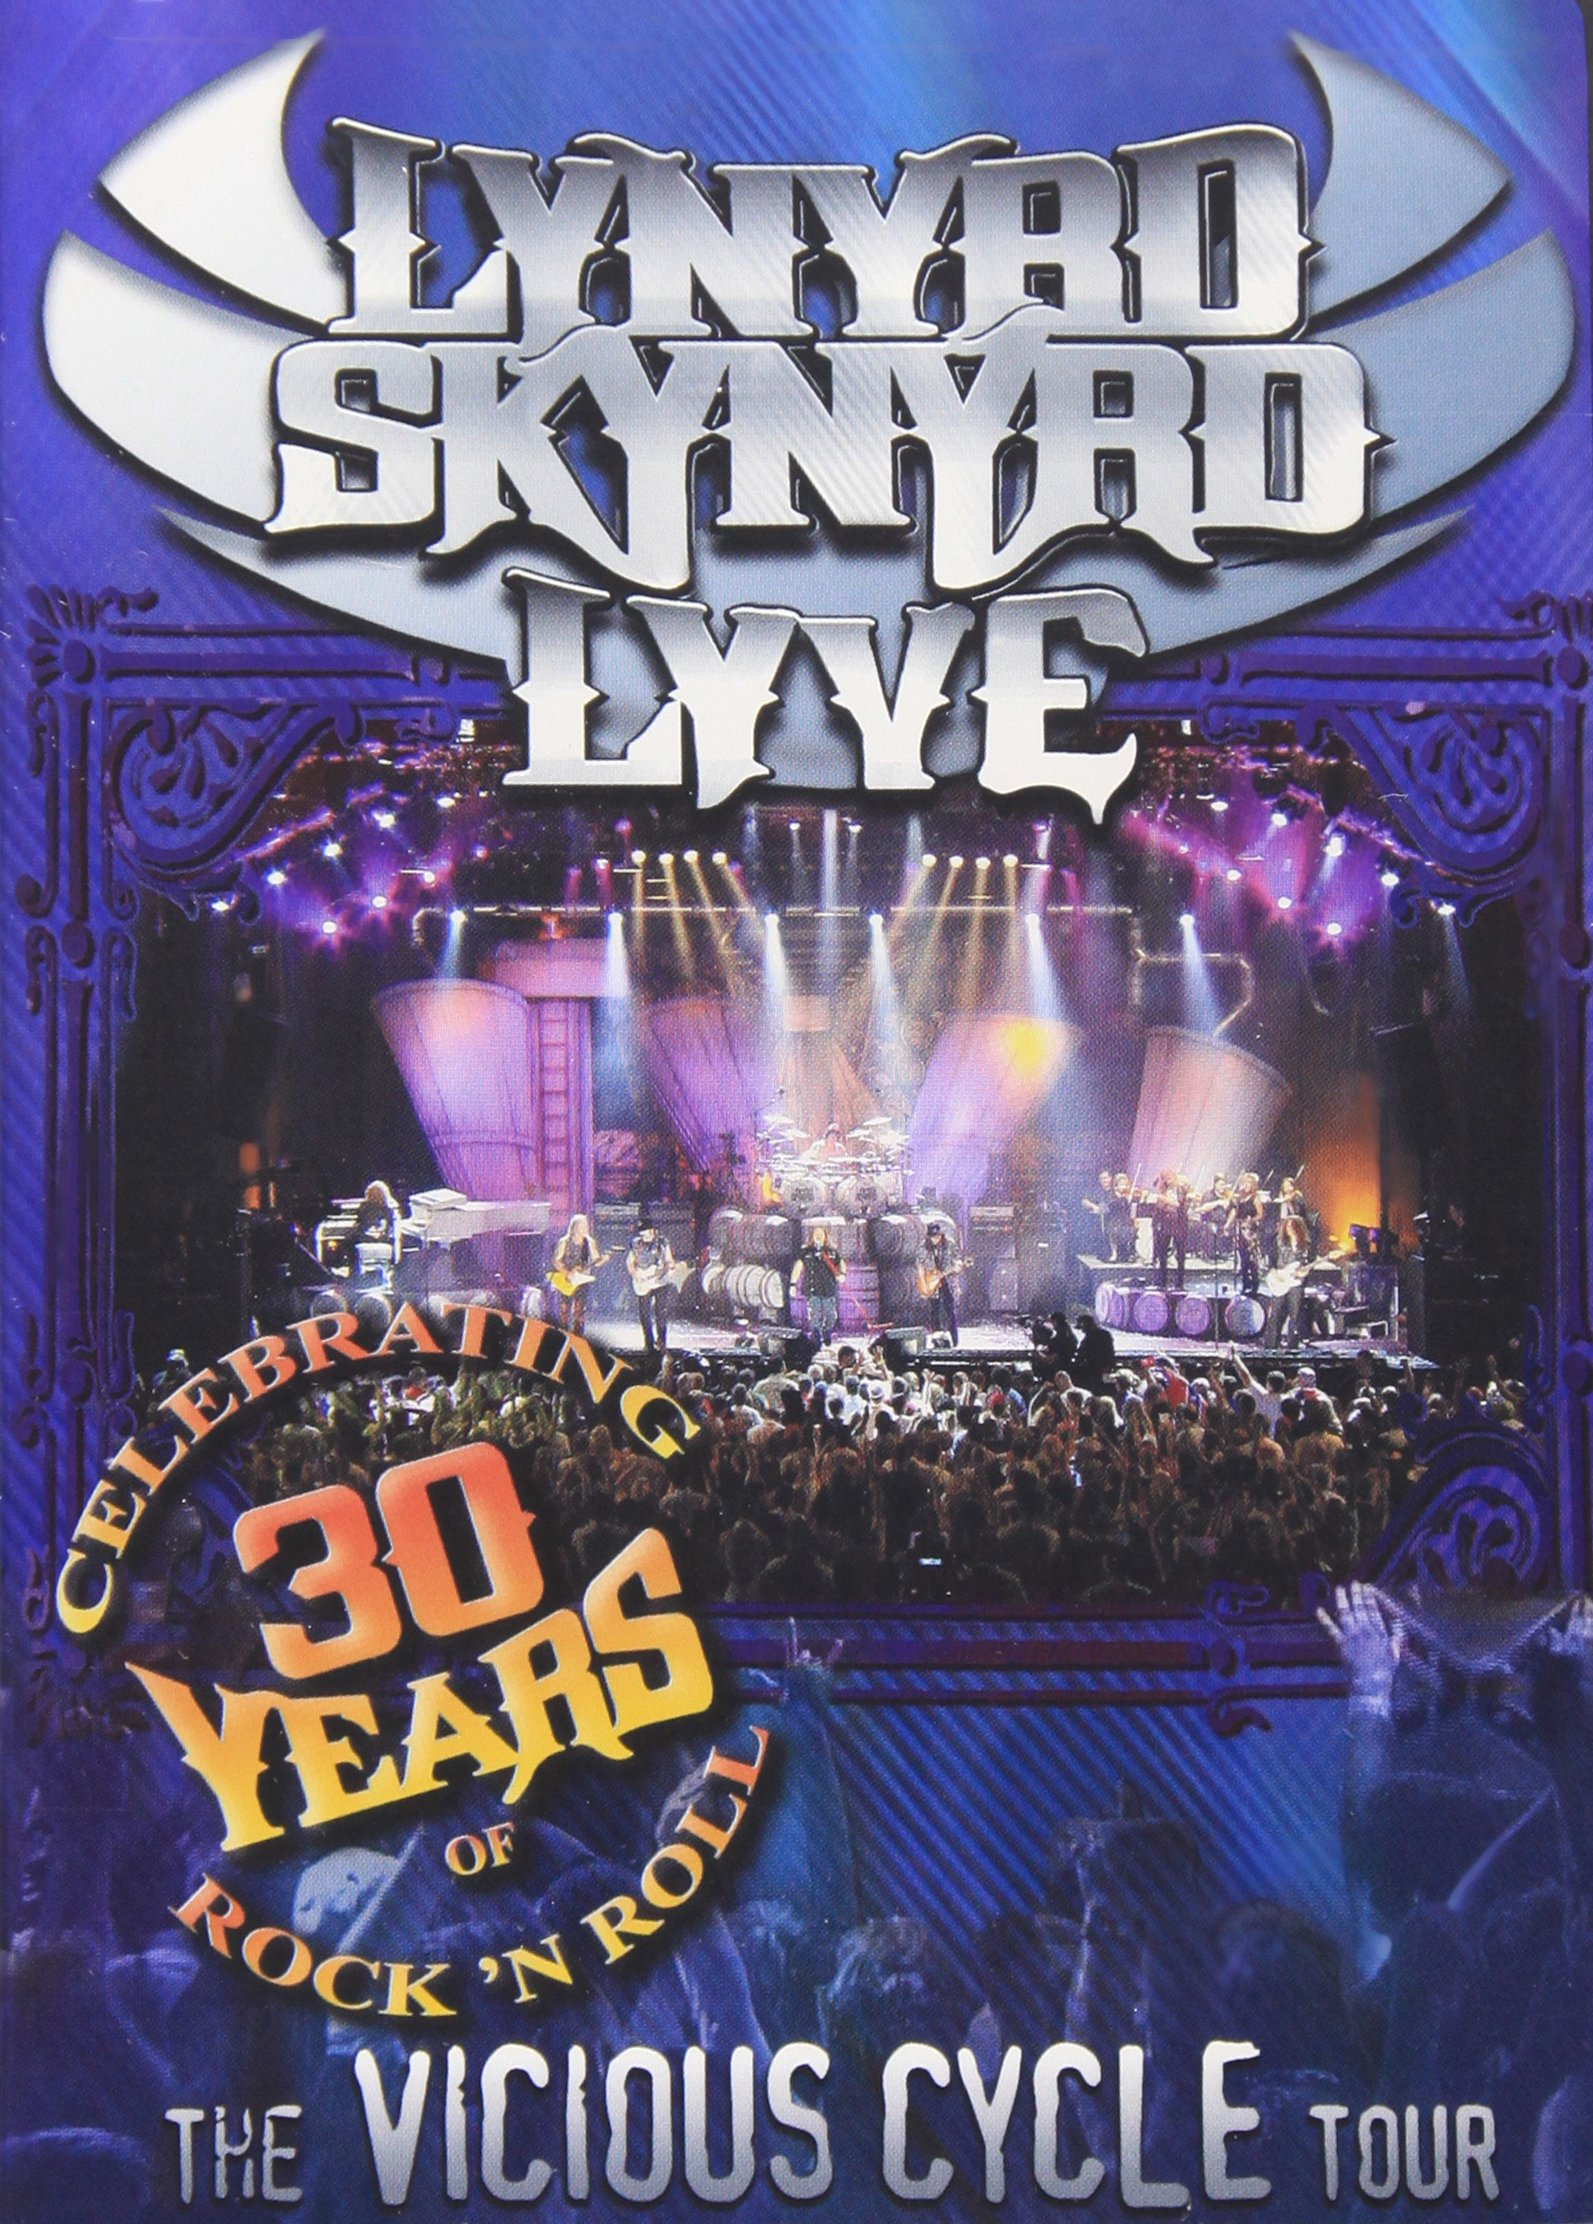 Lynyrd Skynyrd - Lyve- The Vicious Cycle Tour by BMG VIDEO